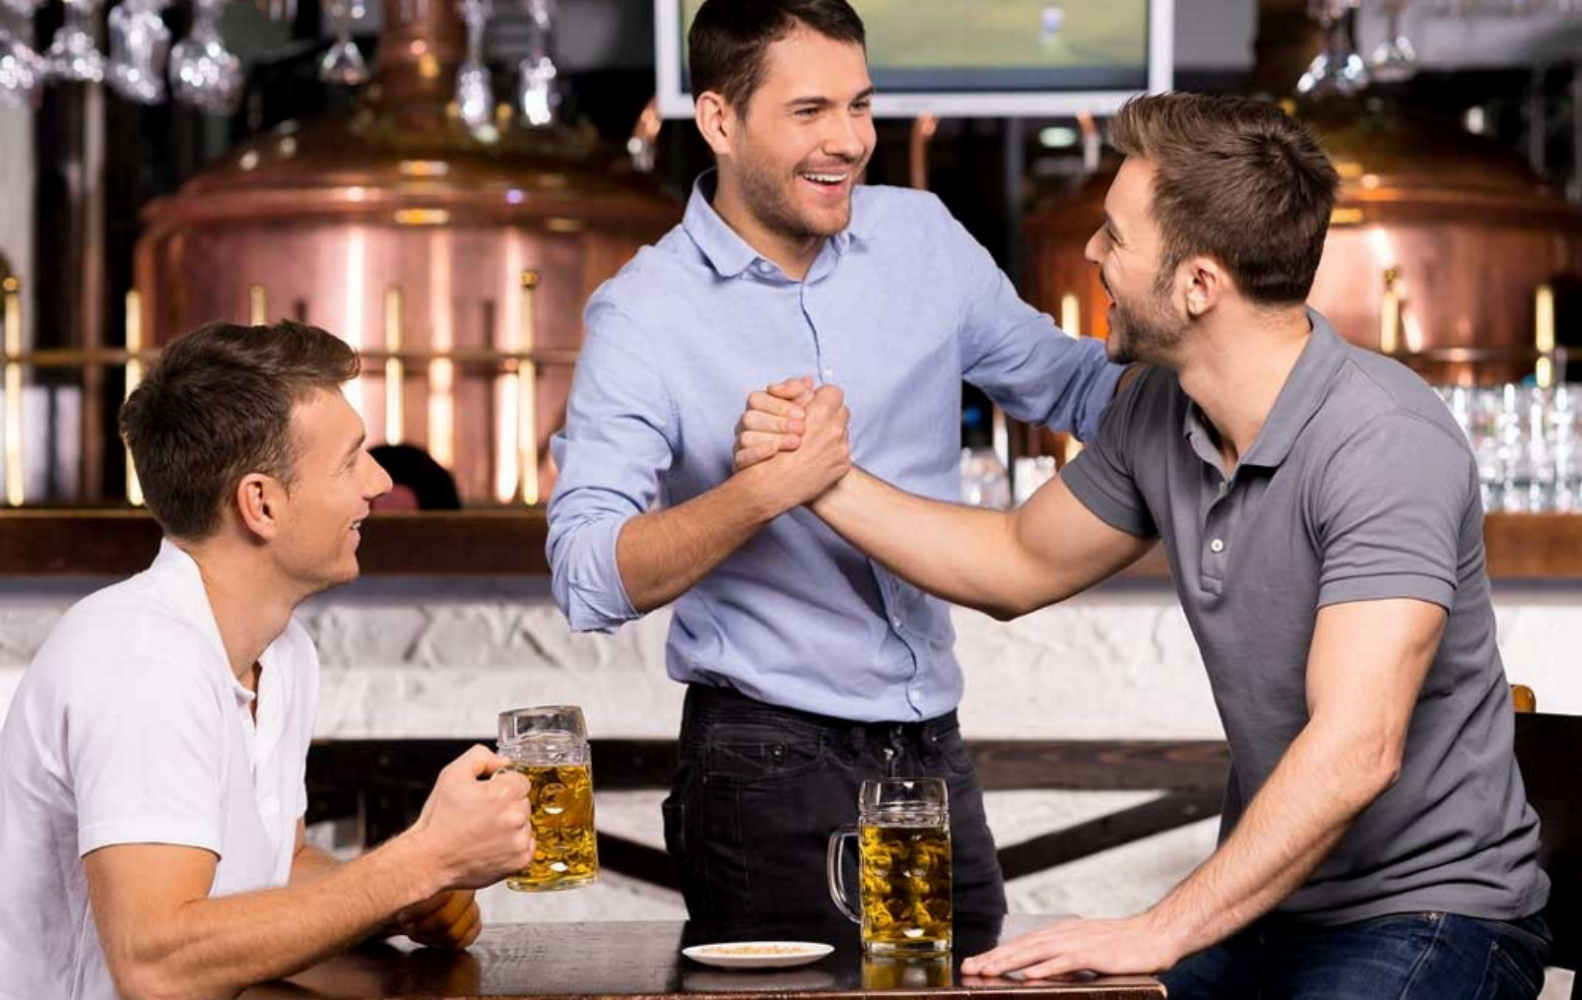 Why We Have a Fear of Being Sober: 5 Fears About It